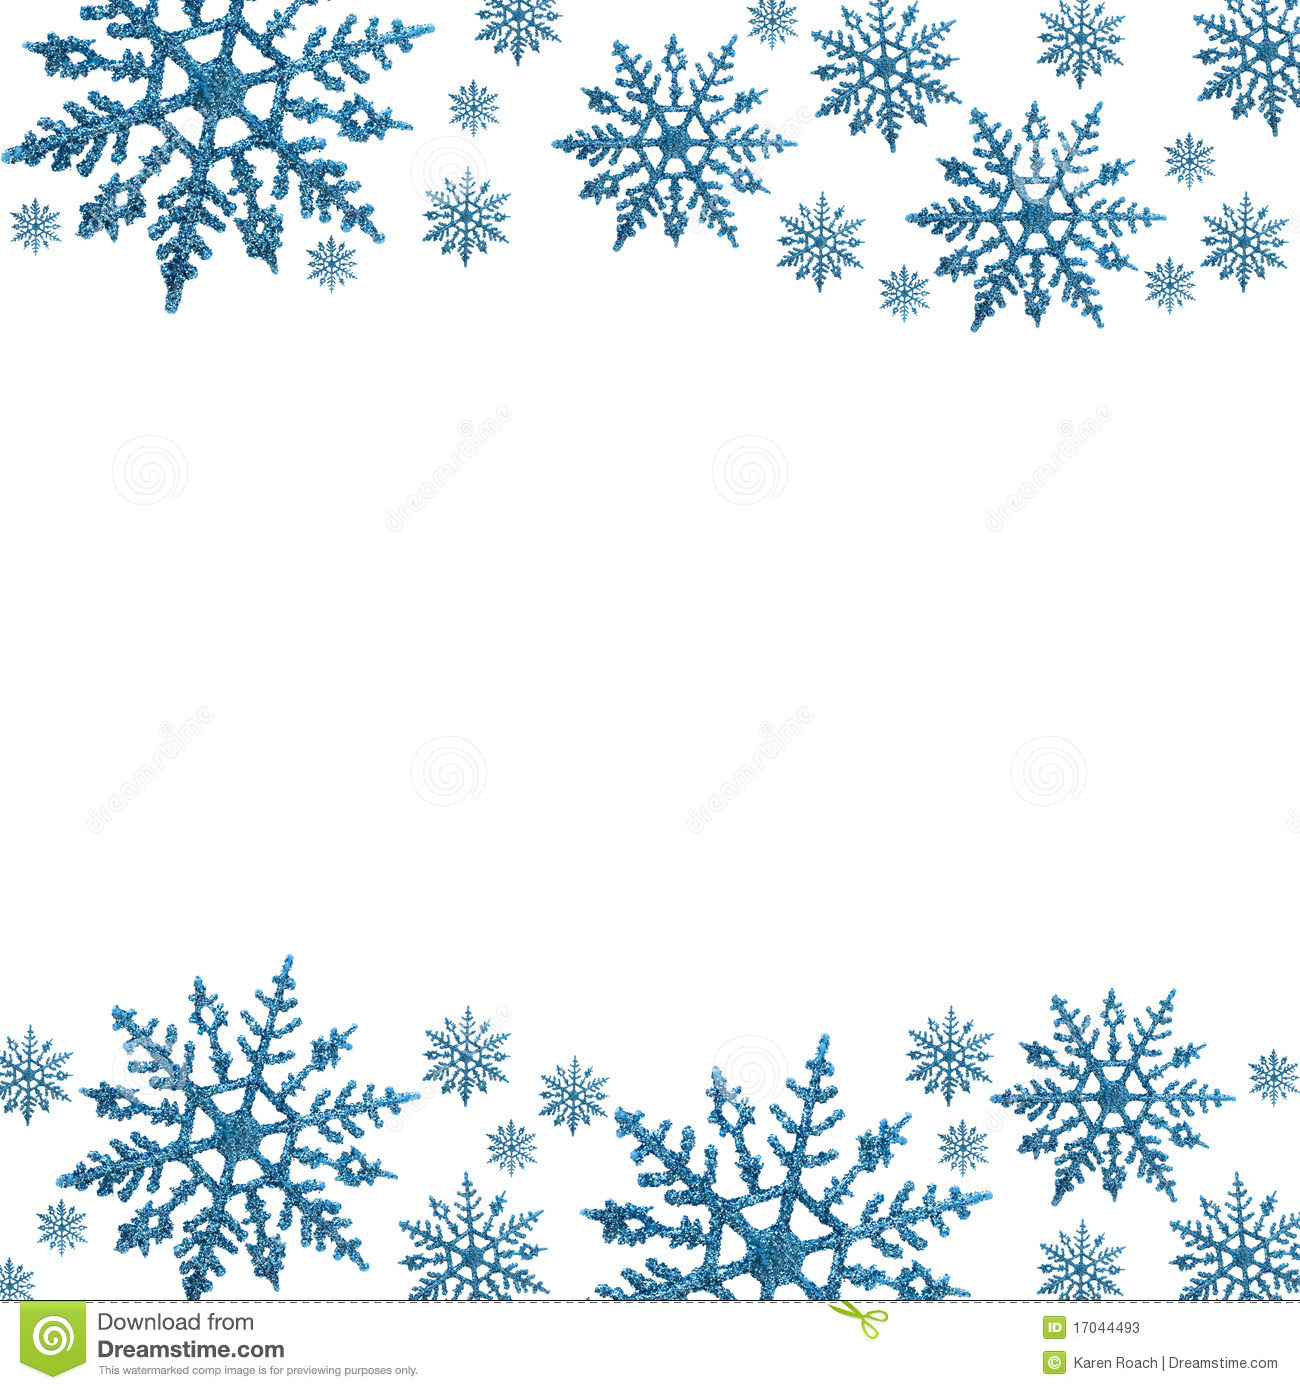 Winter Border Clipart Winter Border Clip-Winter Border Clipart Winter Border Clipart Winter Border Clipart-1